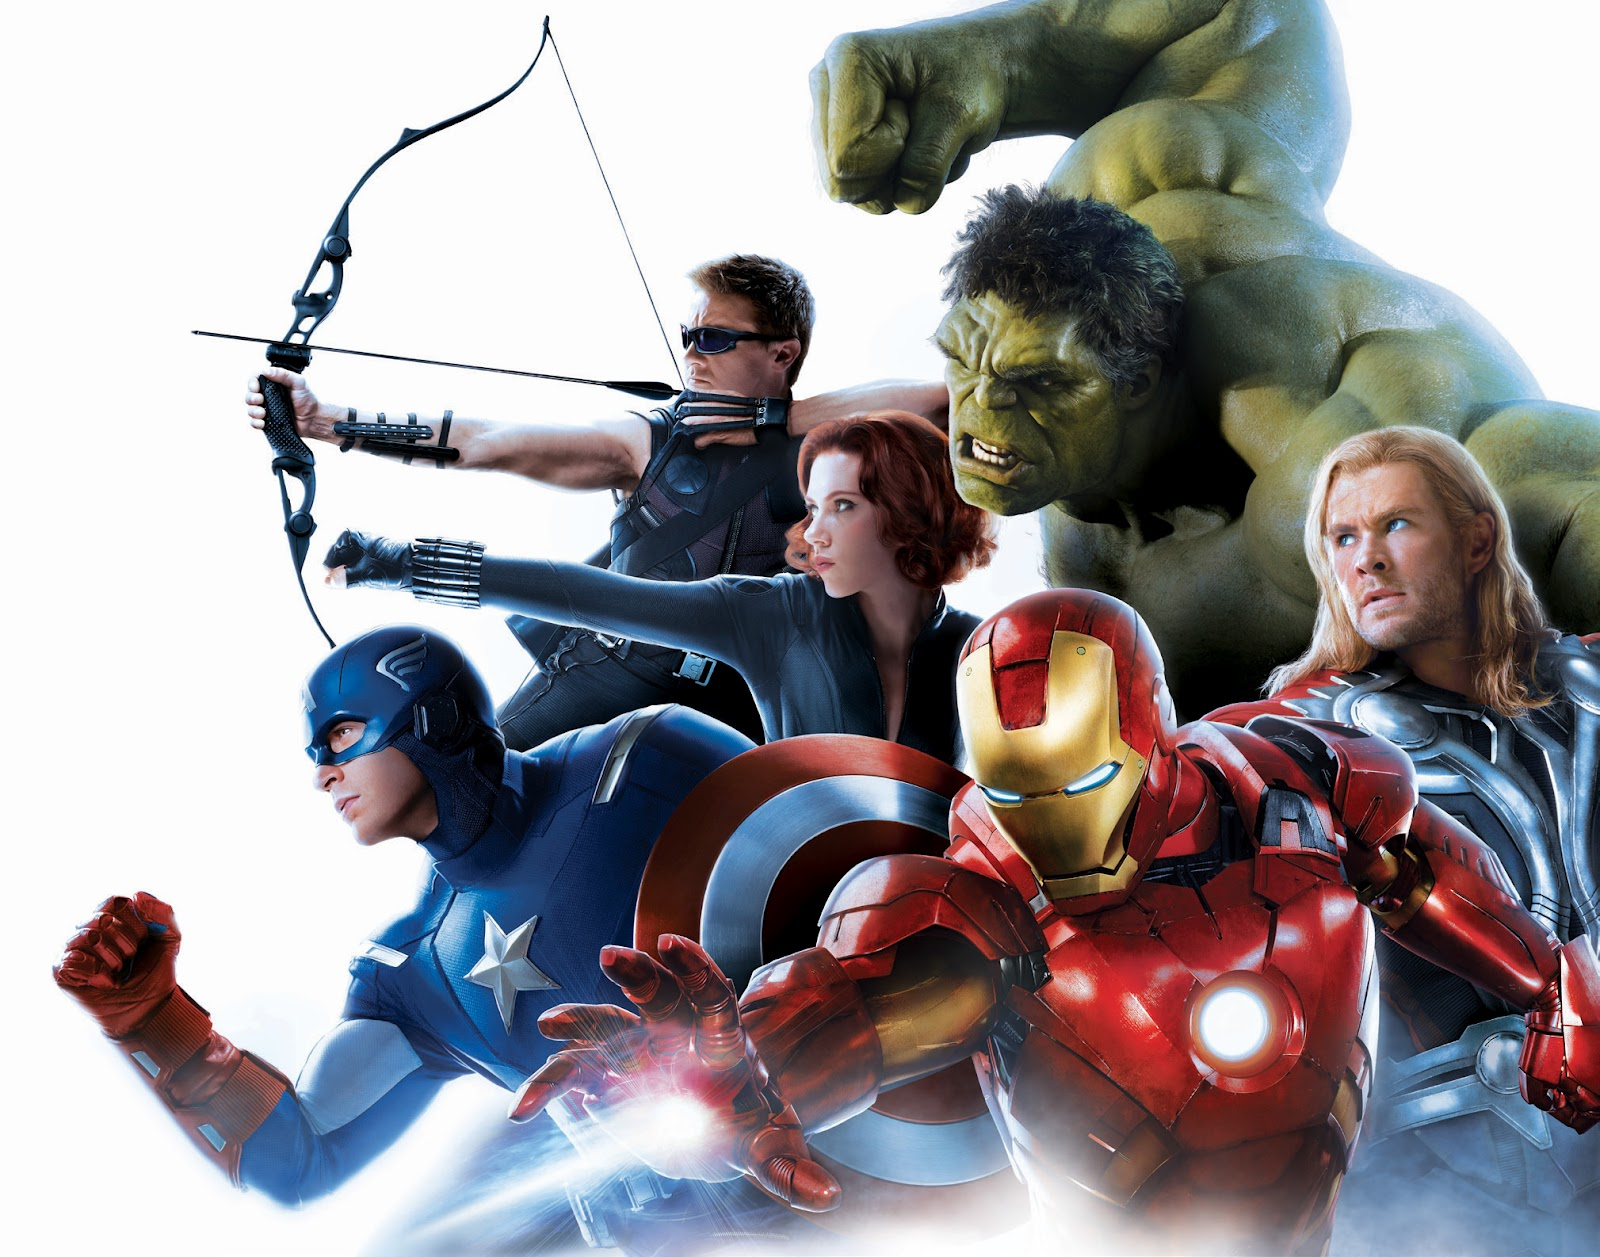 Joss whedon to write and direct the avengers 2